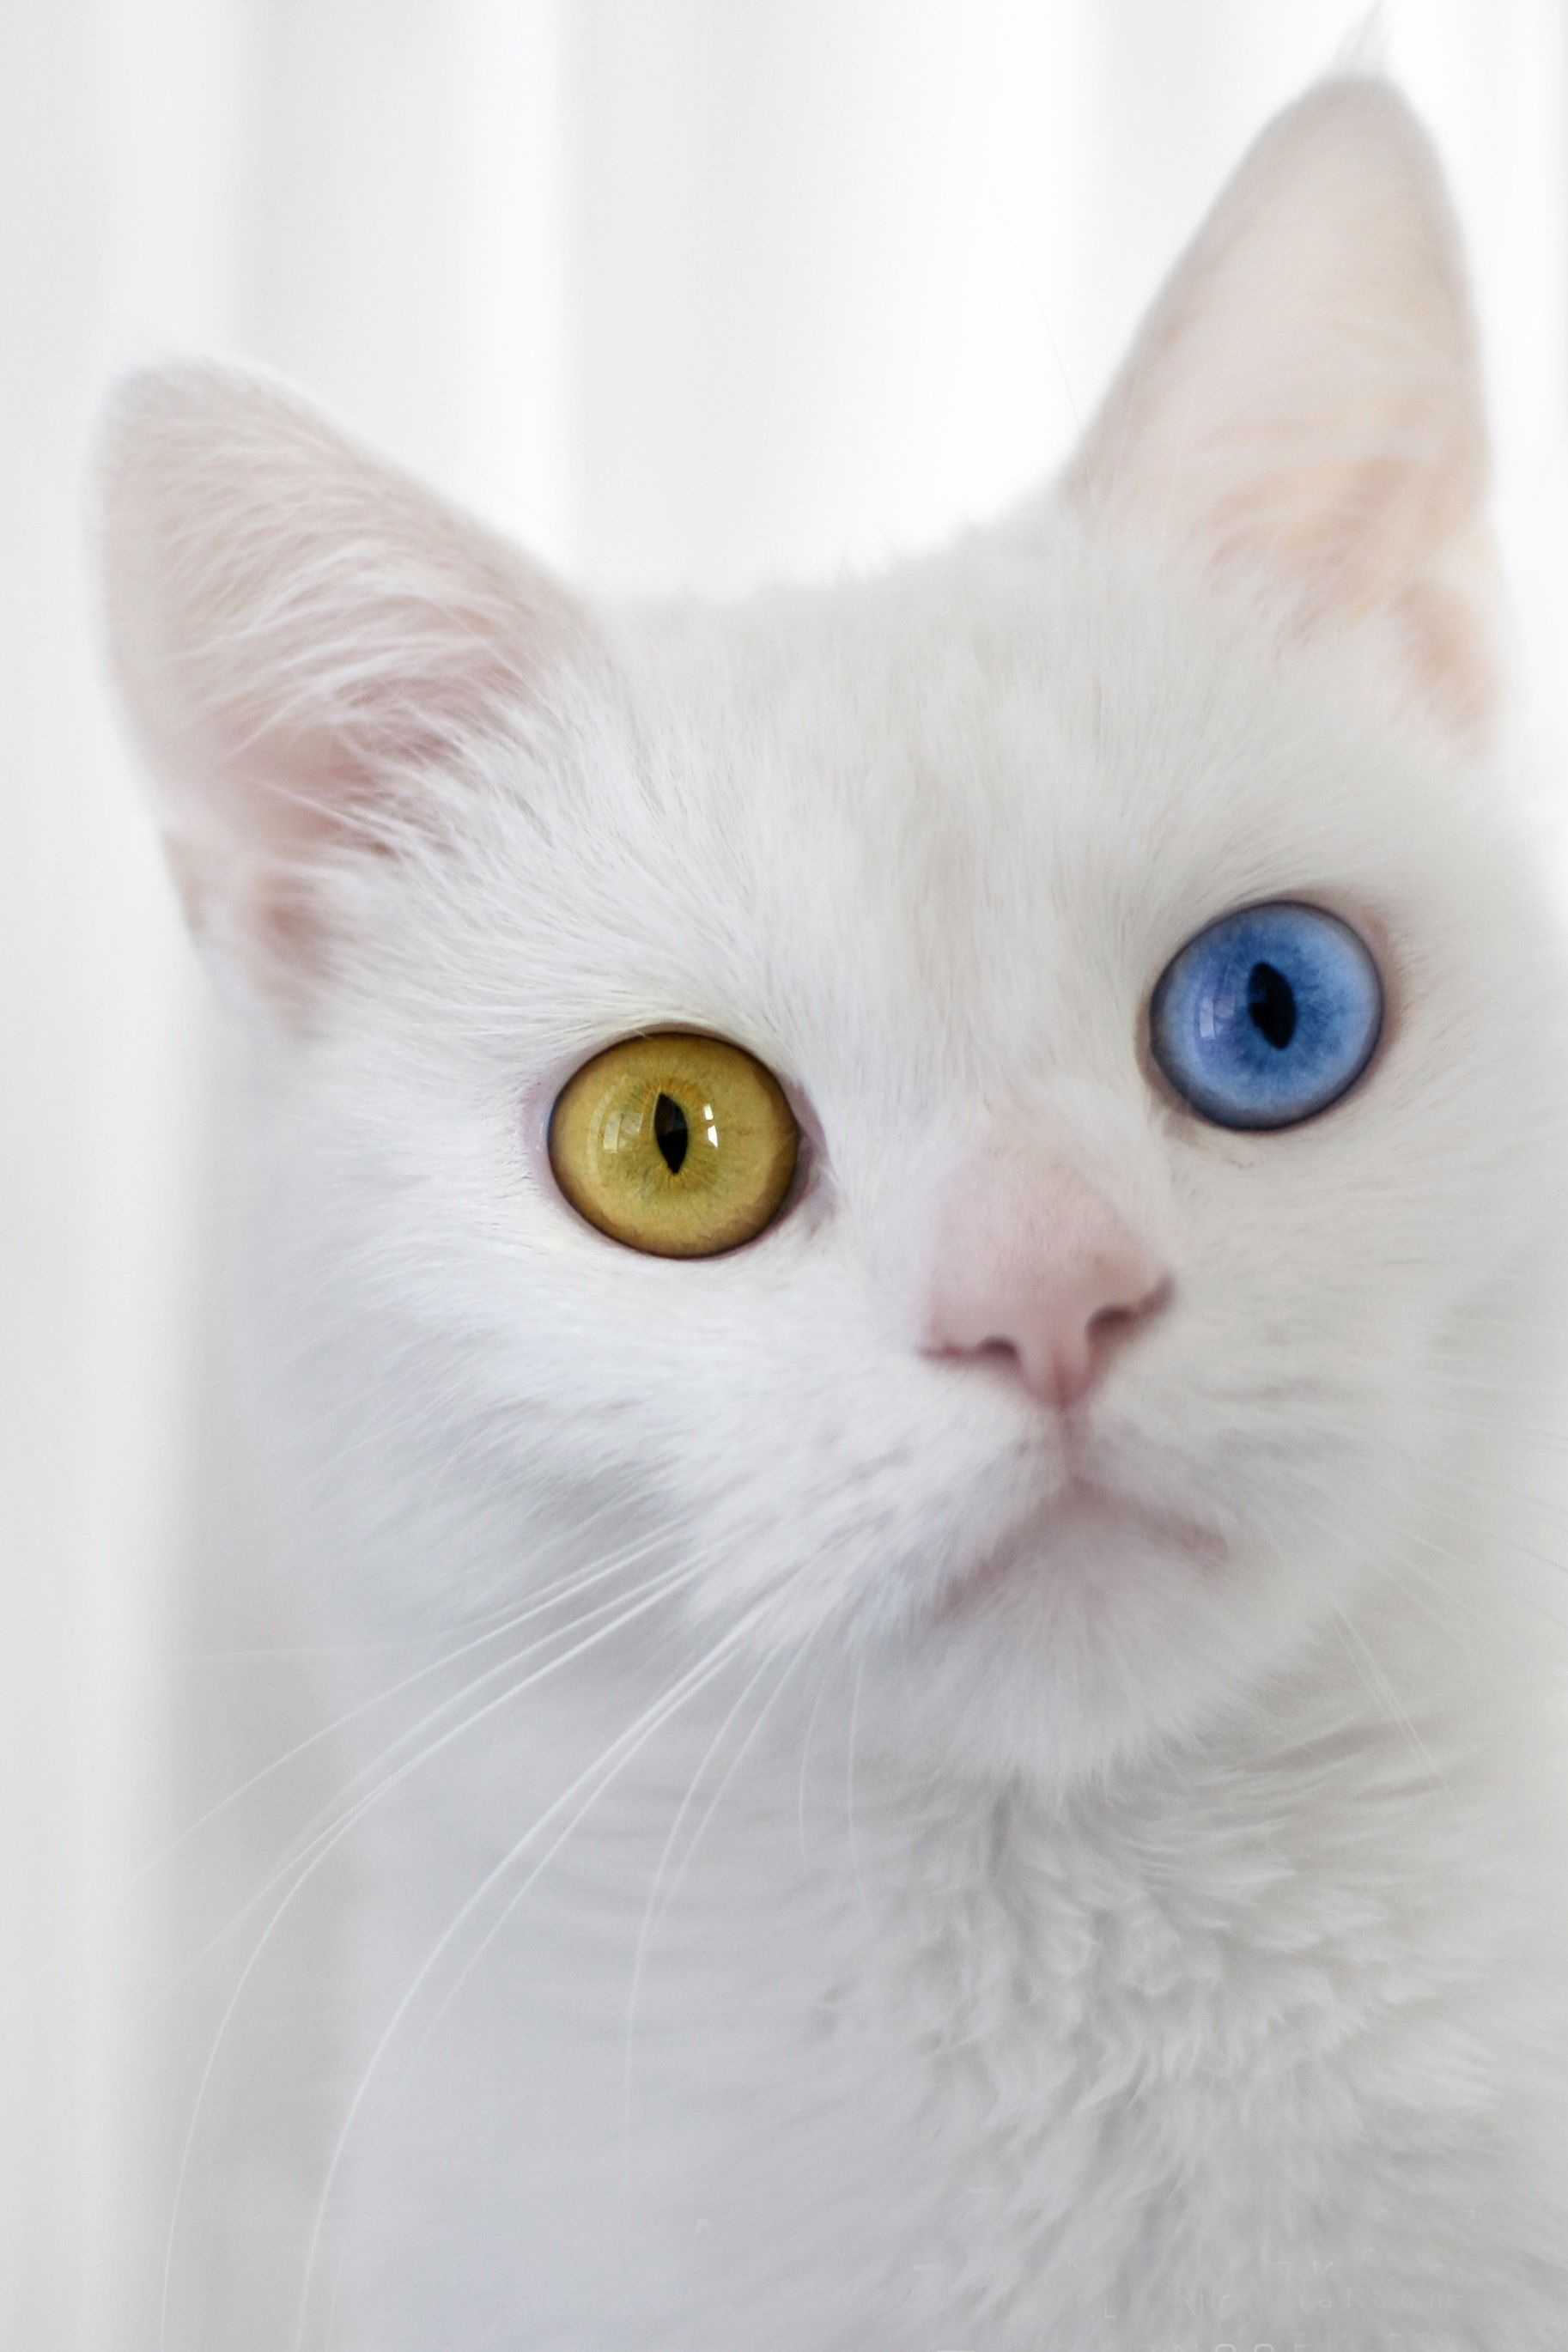 Have you ever met a cat with two different colored eyes